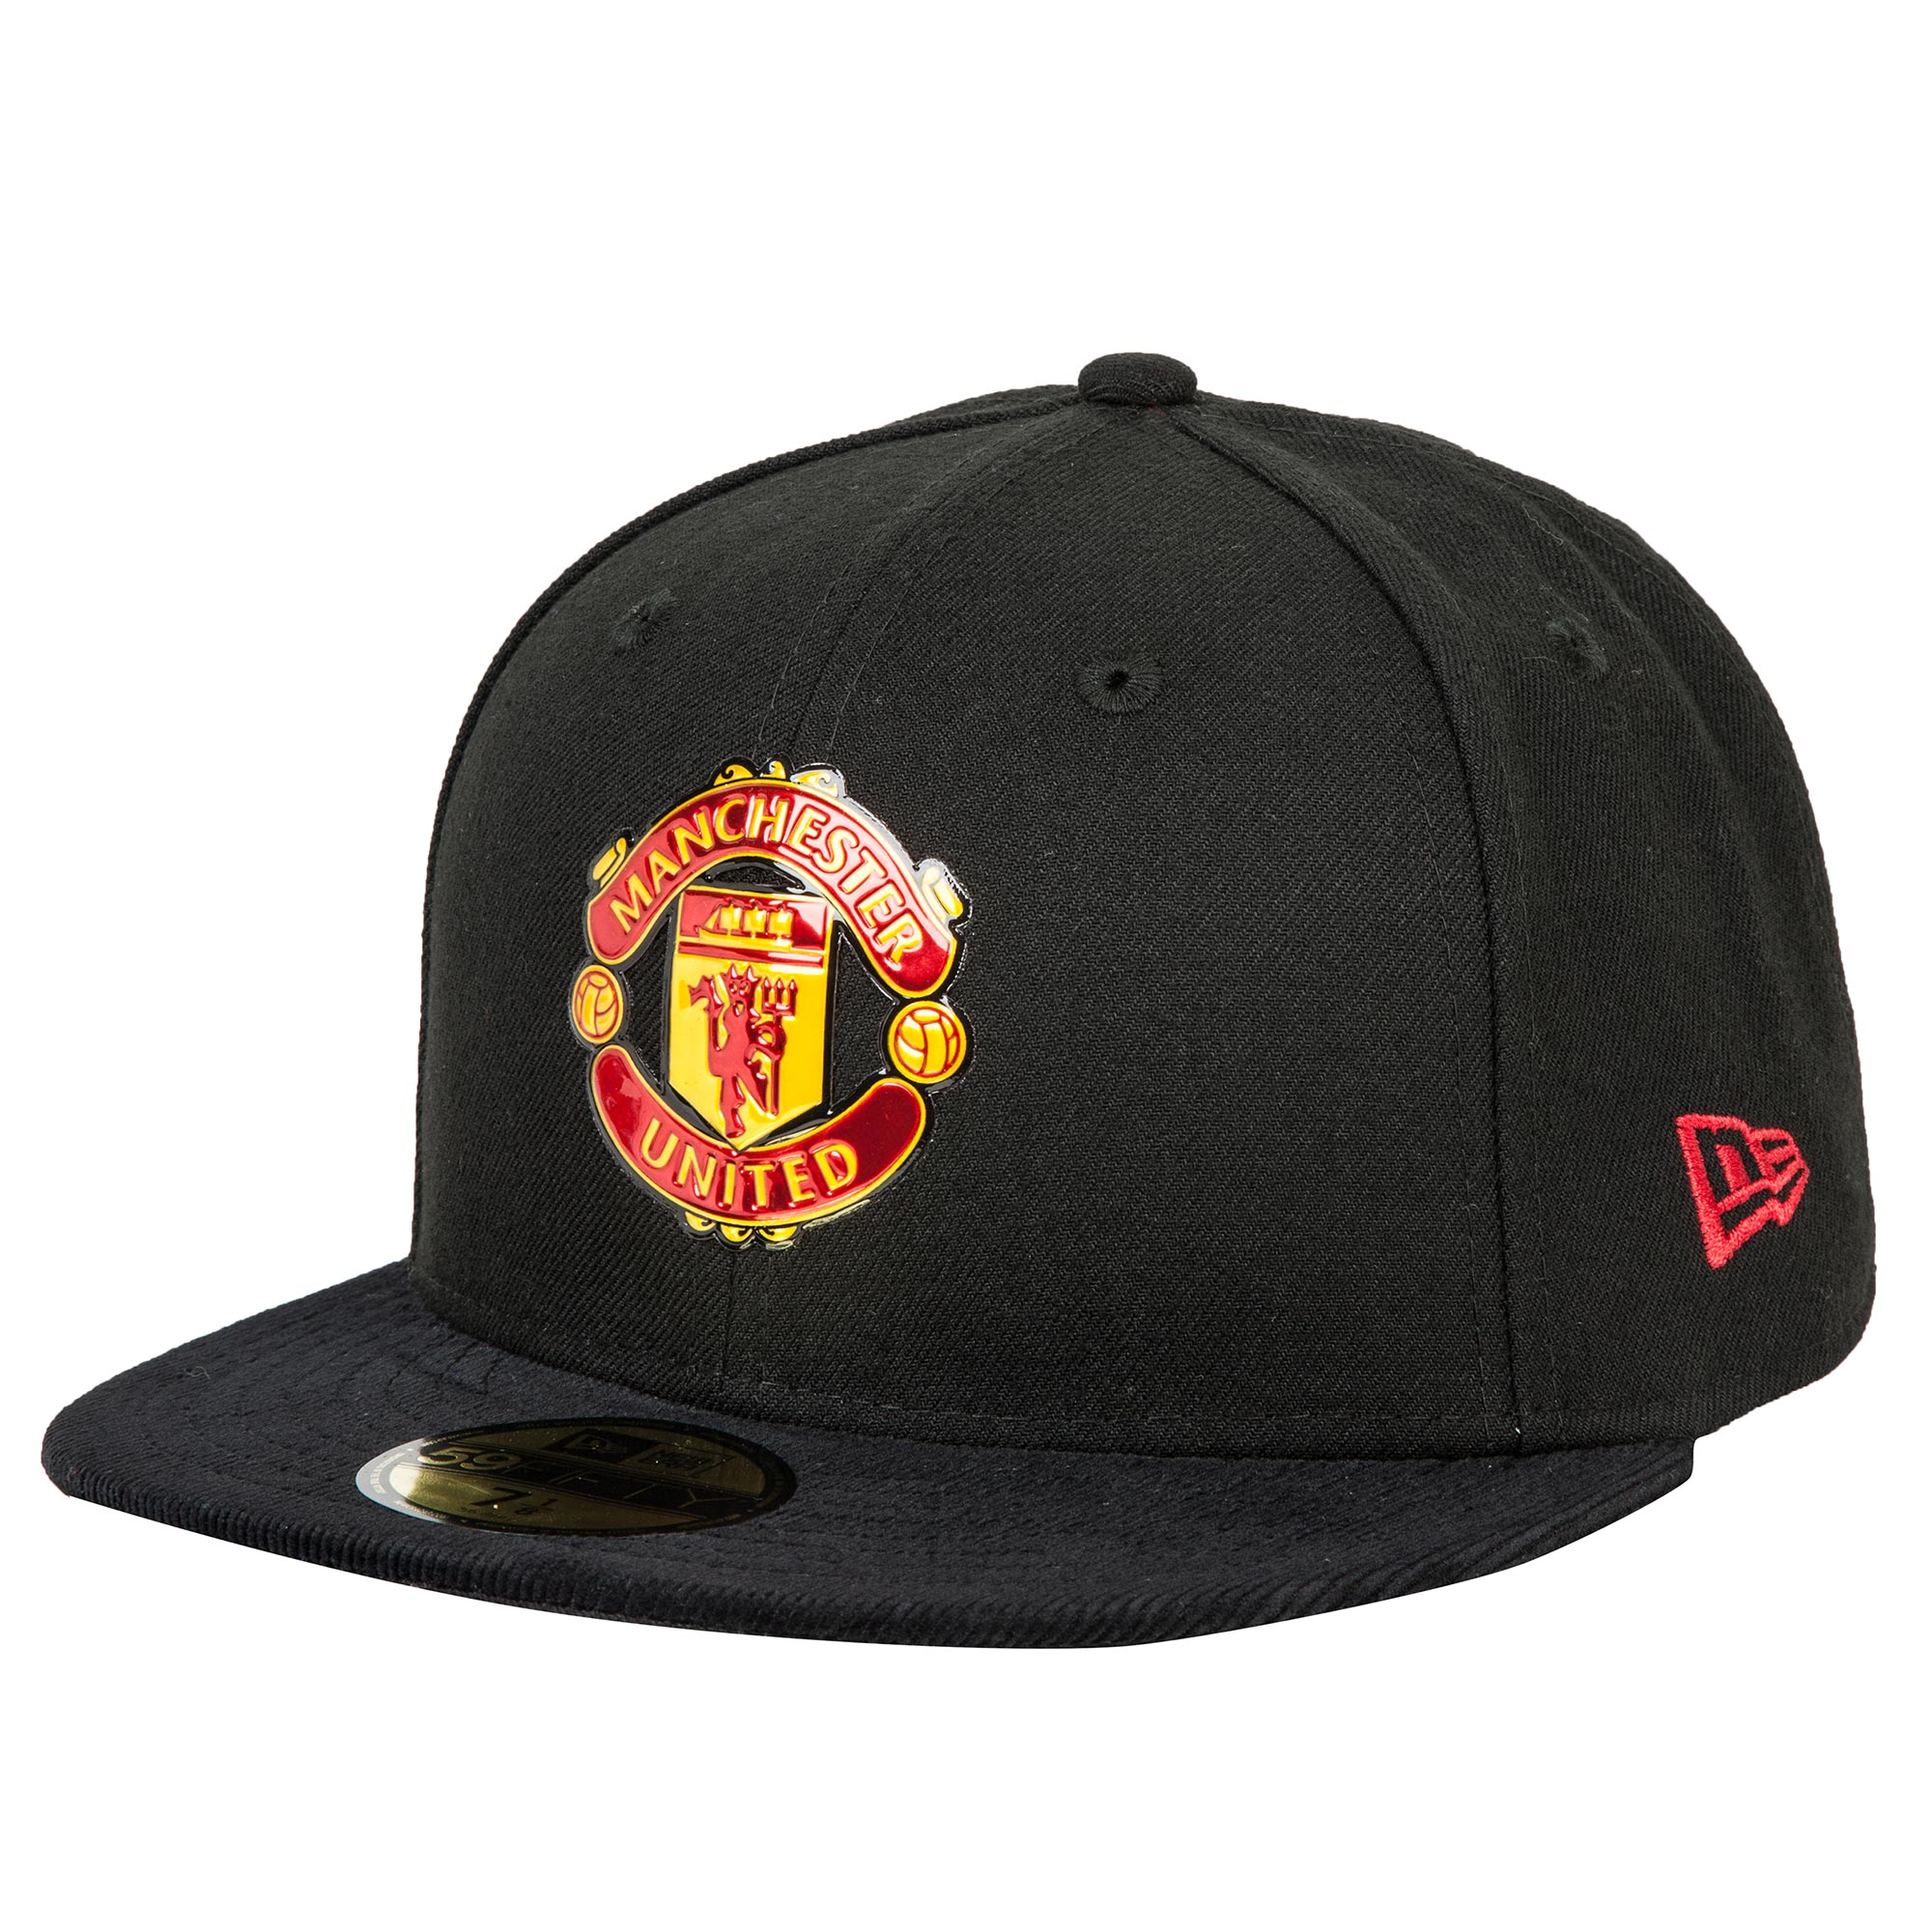 Manchester United New Era 59FIFTY Needlecord Fitted Cap - Black - Adul